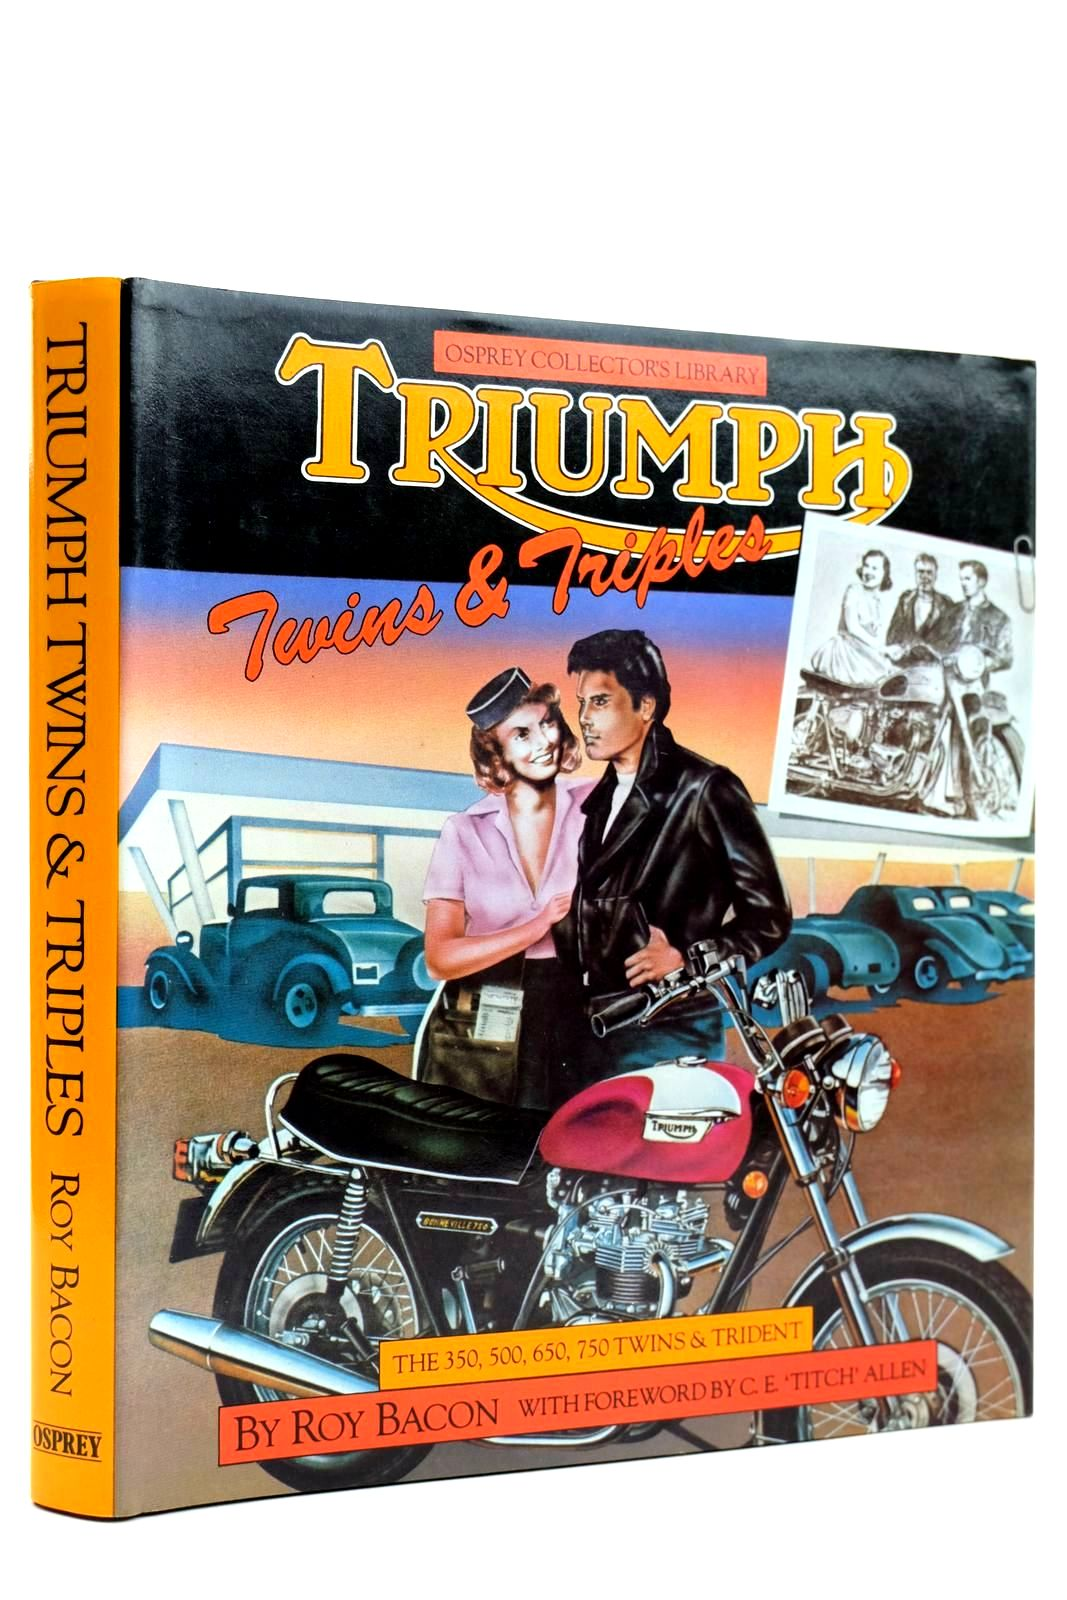 Photo of TRIUMPH TWINS & TRIPLES THE 350, 500, 650, 750 TWINS AND TRIDENT written by Bacon, Roy published by Osprey Publishing (STOCK CODE: 2131993)  for sale by Stella & Rose's Books